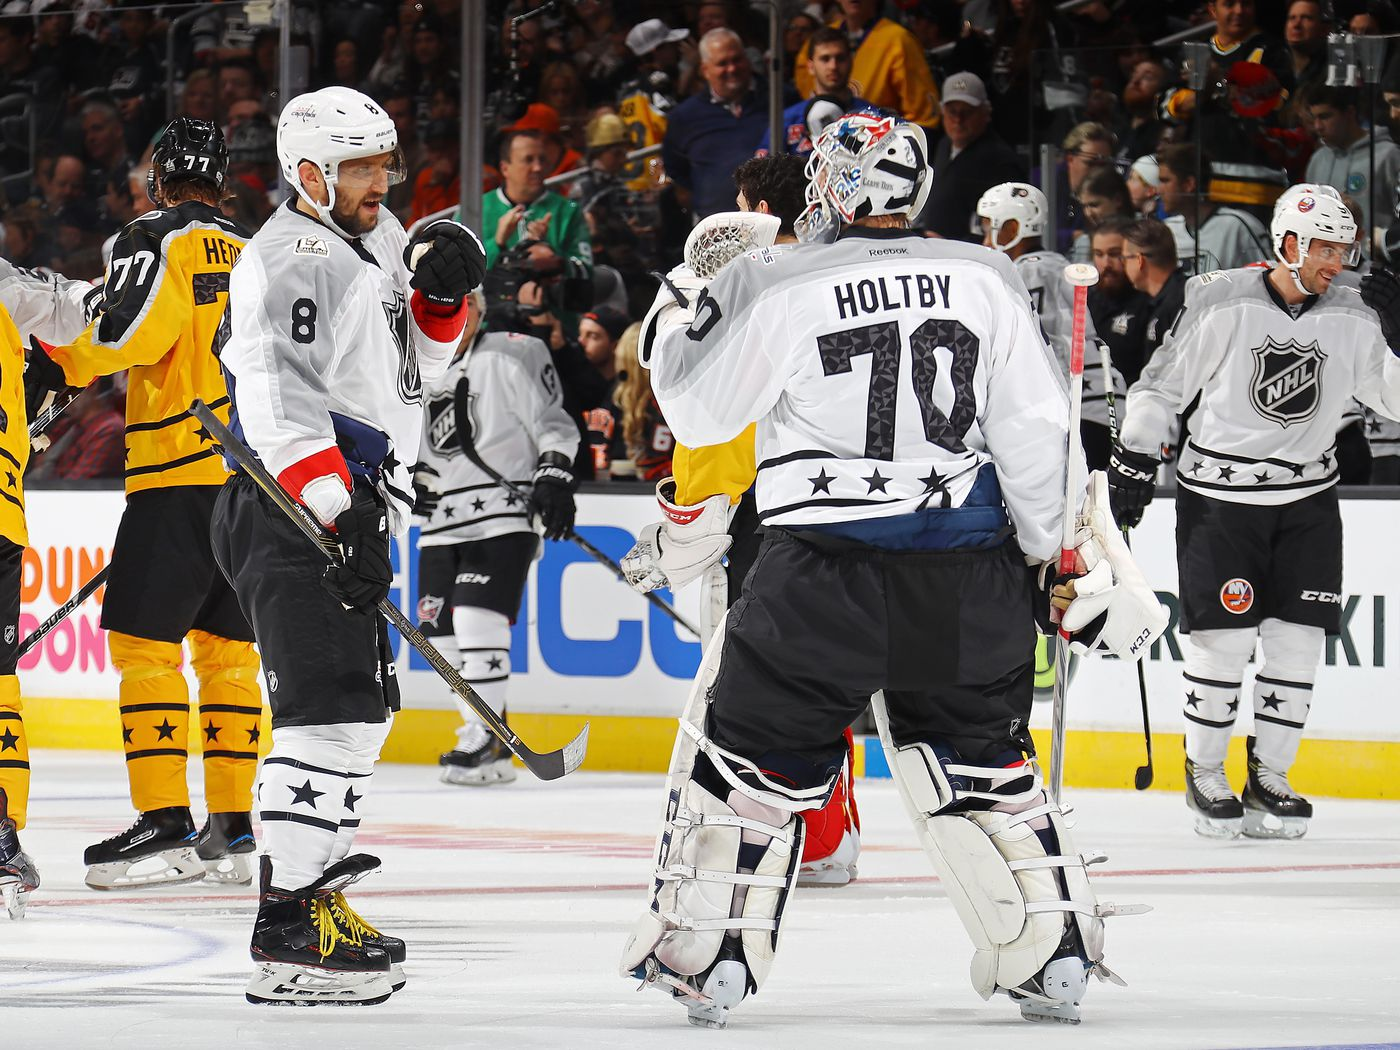 Braden Holtby Selected For All Star Game Japers Rink